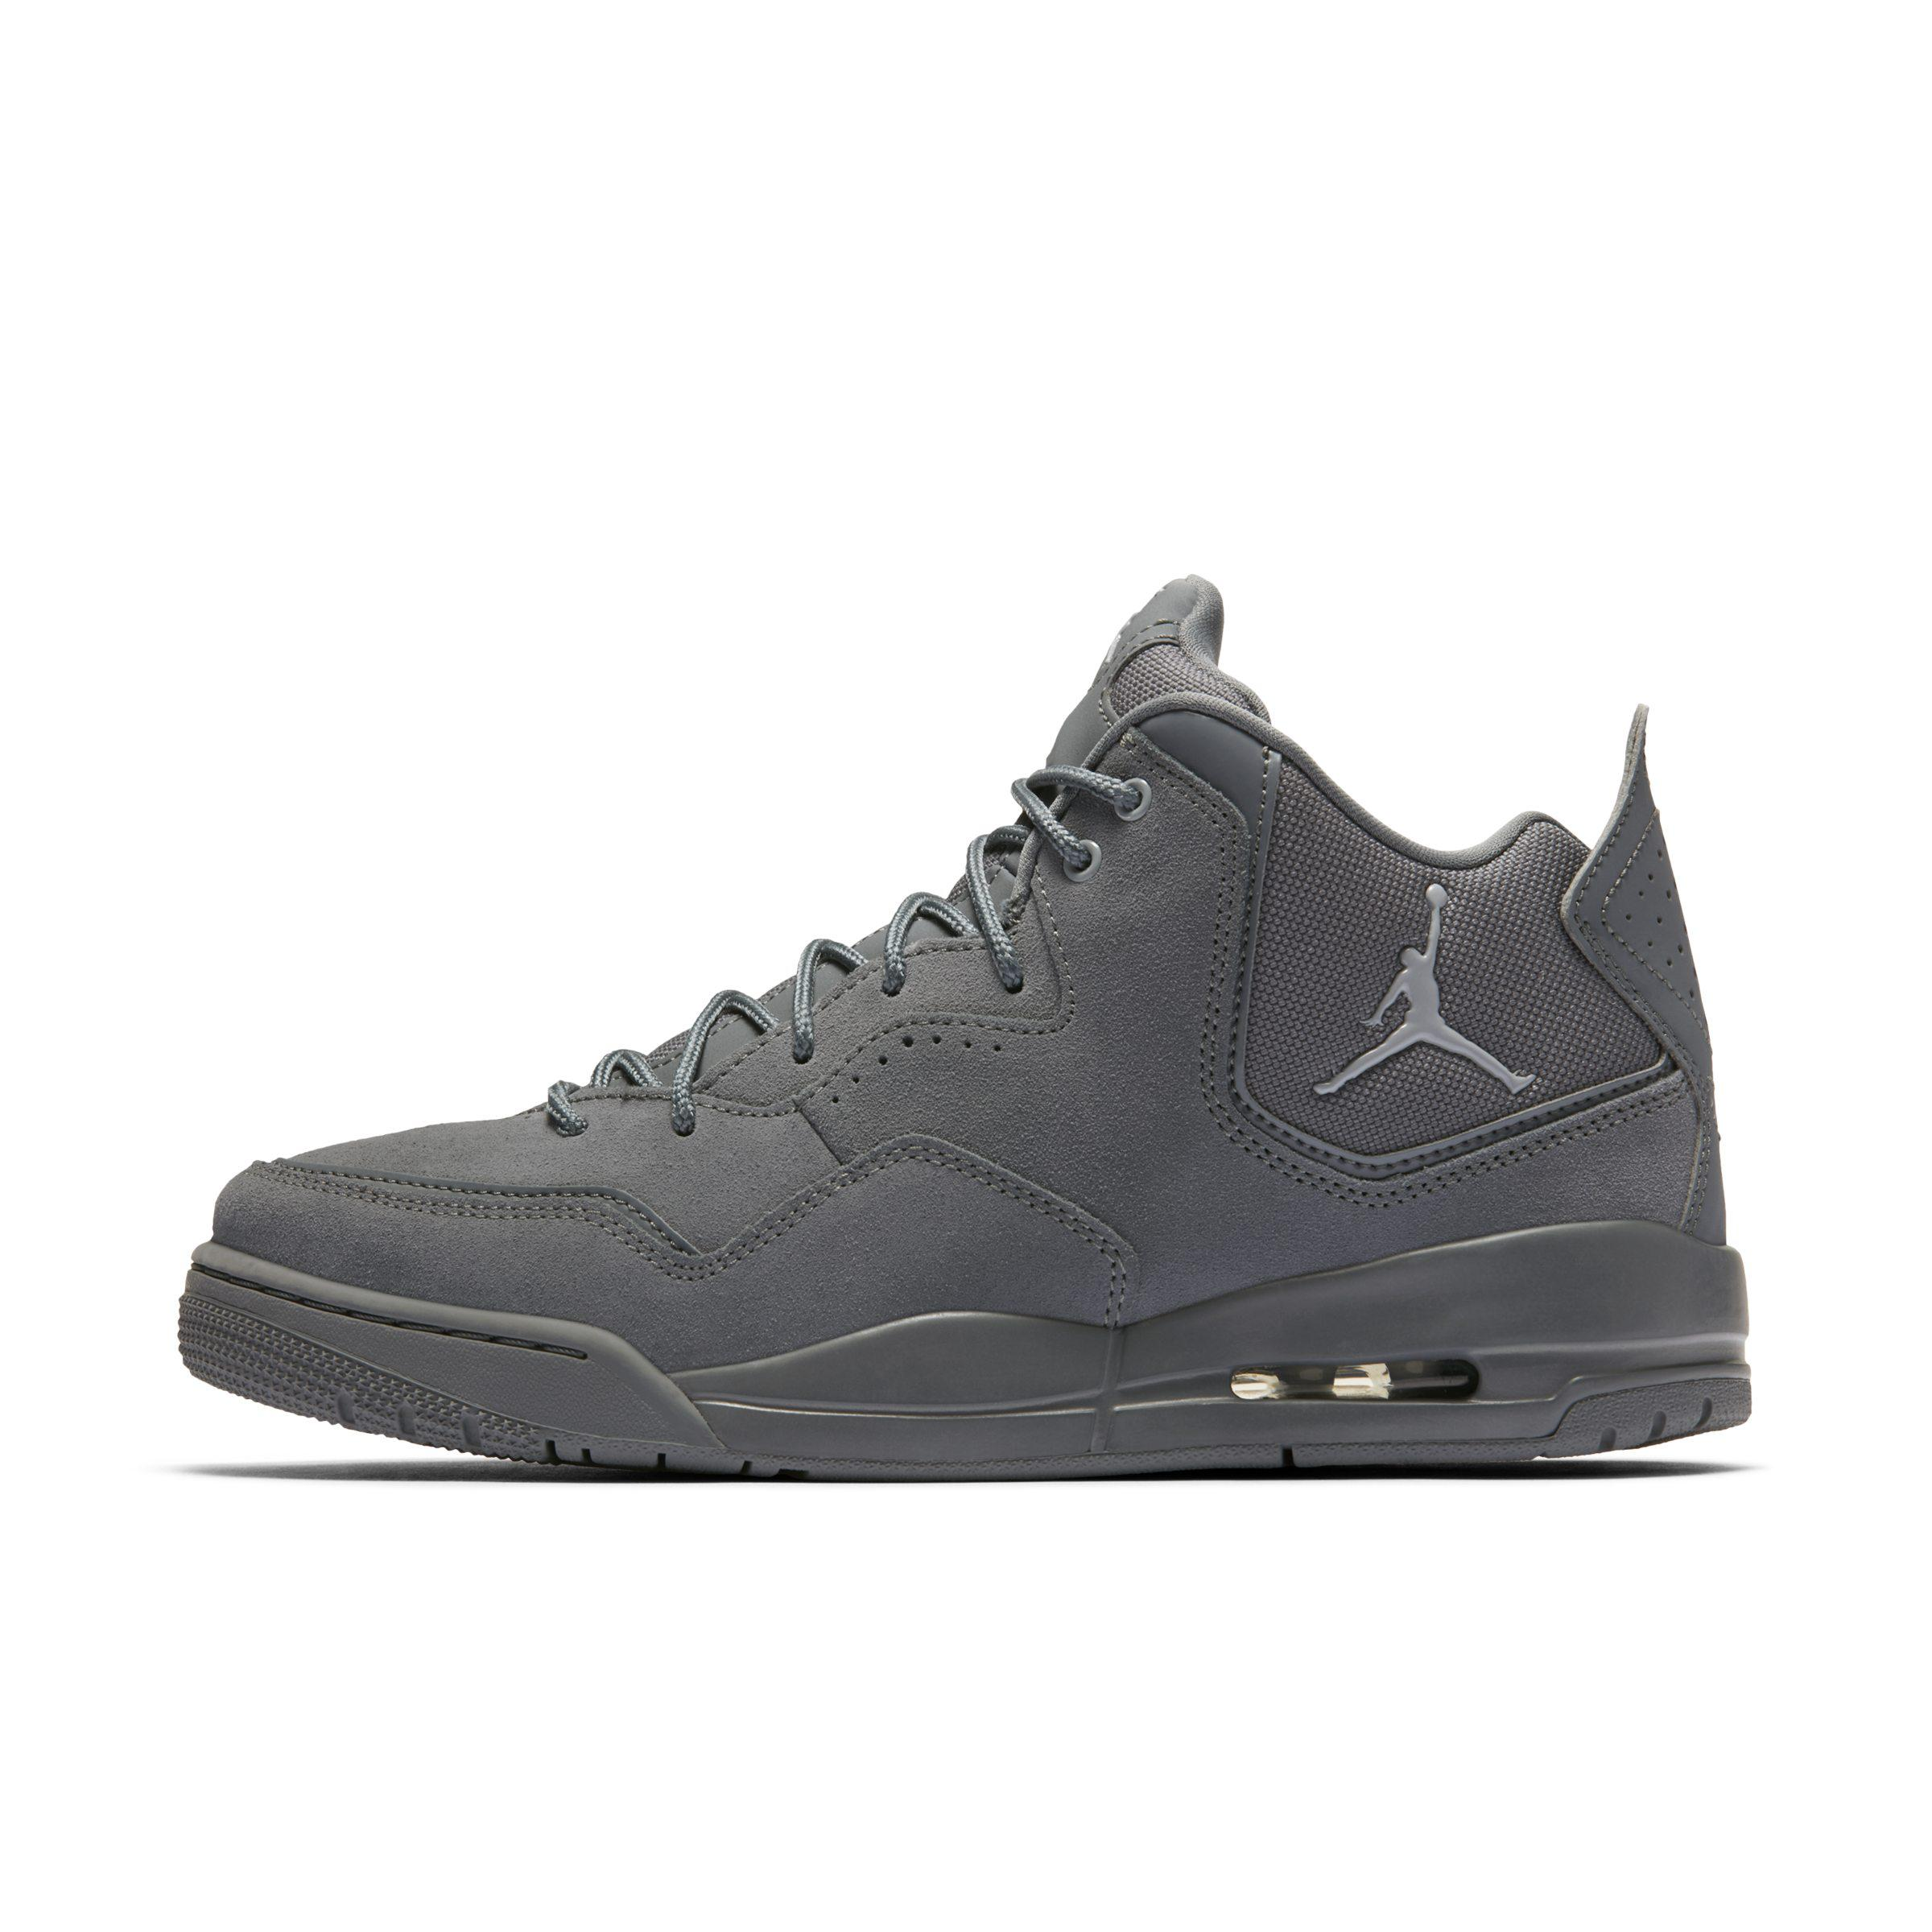 cheap for discount 500a2 94697 Nike Jordan Courtside 23 We Shoe in Gray for Men - Lyst